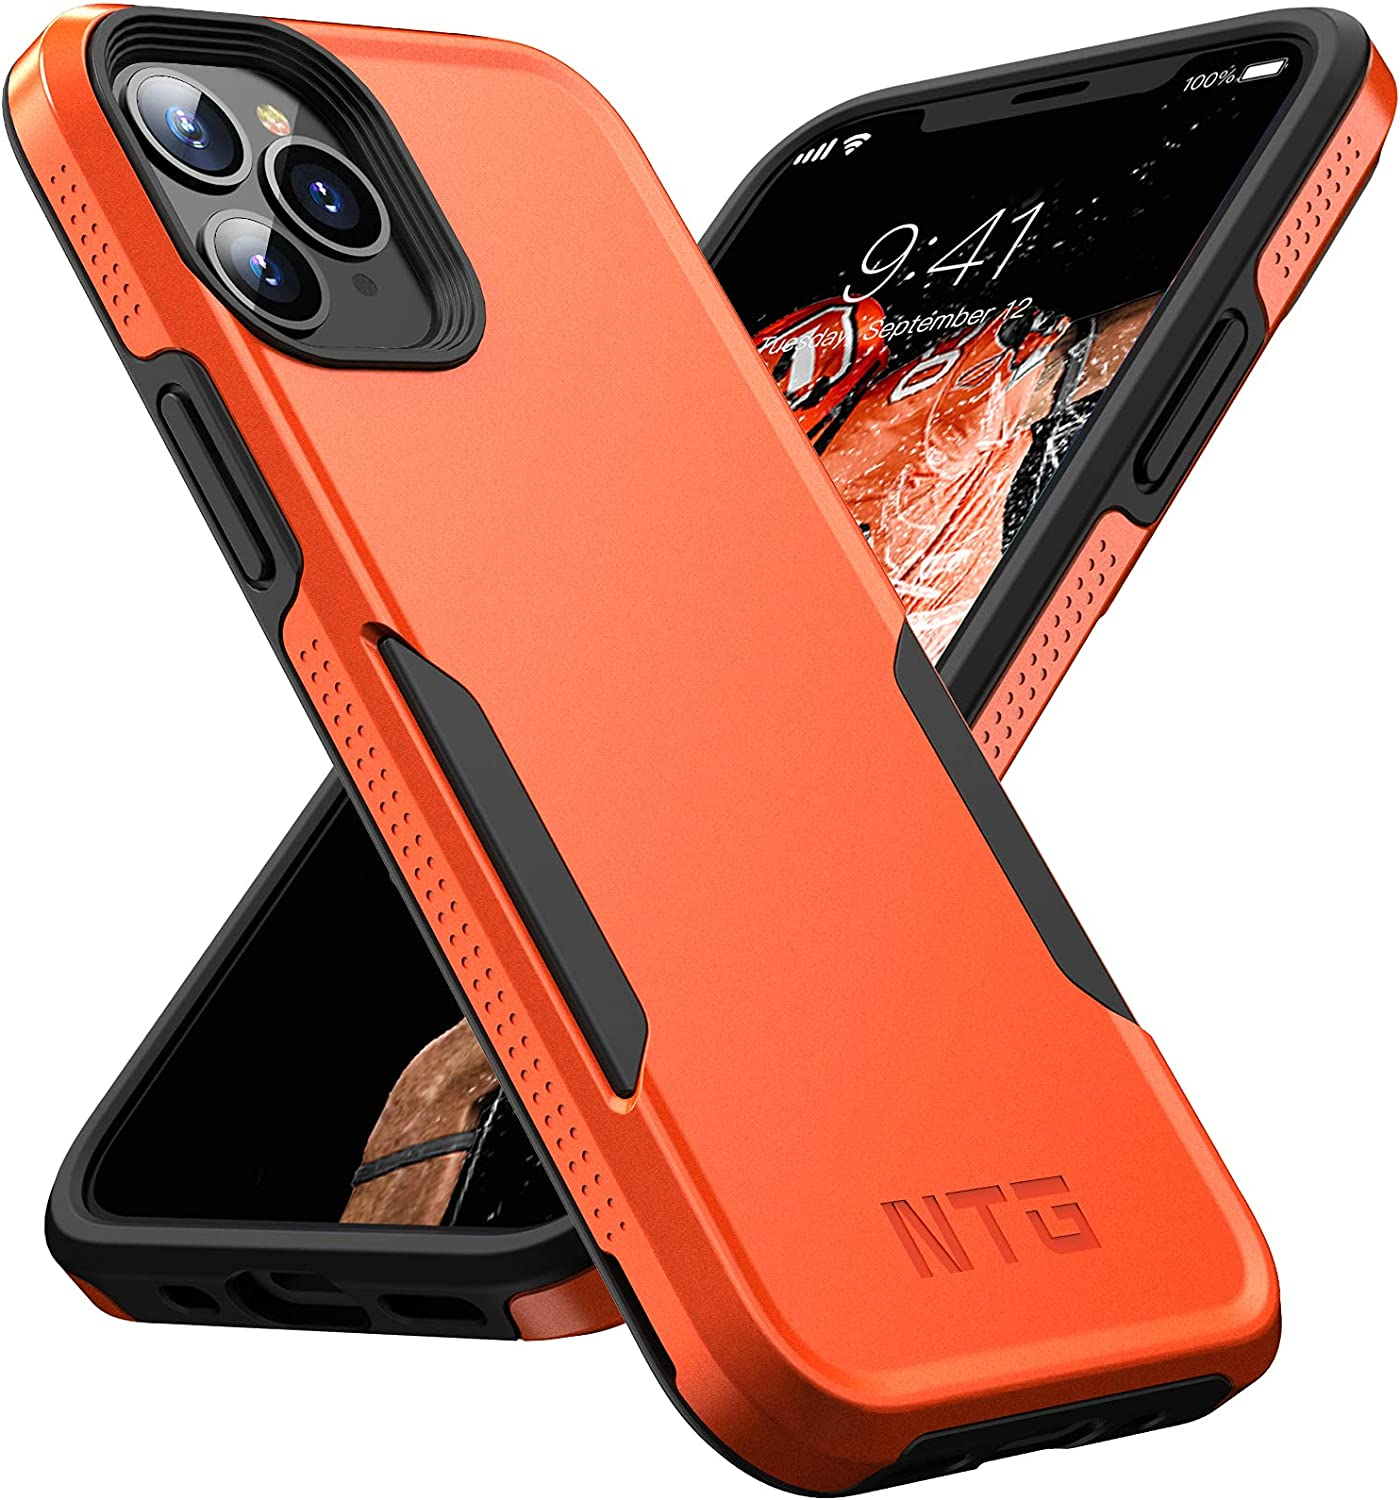 NTG [1st Generation] Designed for iPhone 11 Pro Max Case, Heavy-Duty Tough Rugged Lightweight Slim Shockproof Protective Case for iPhone 11 Pro Max 6.5 inch (Orange)